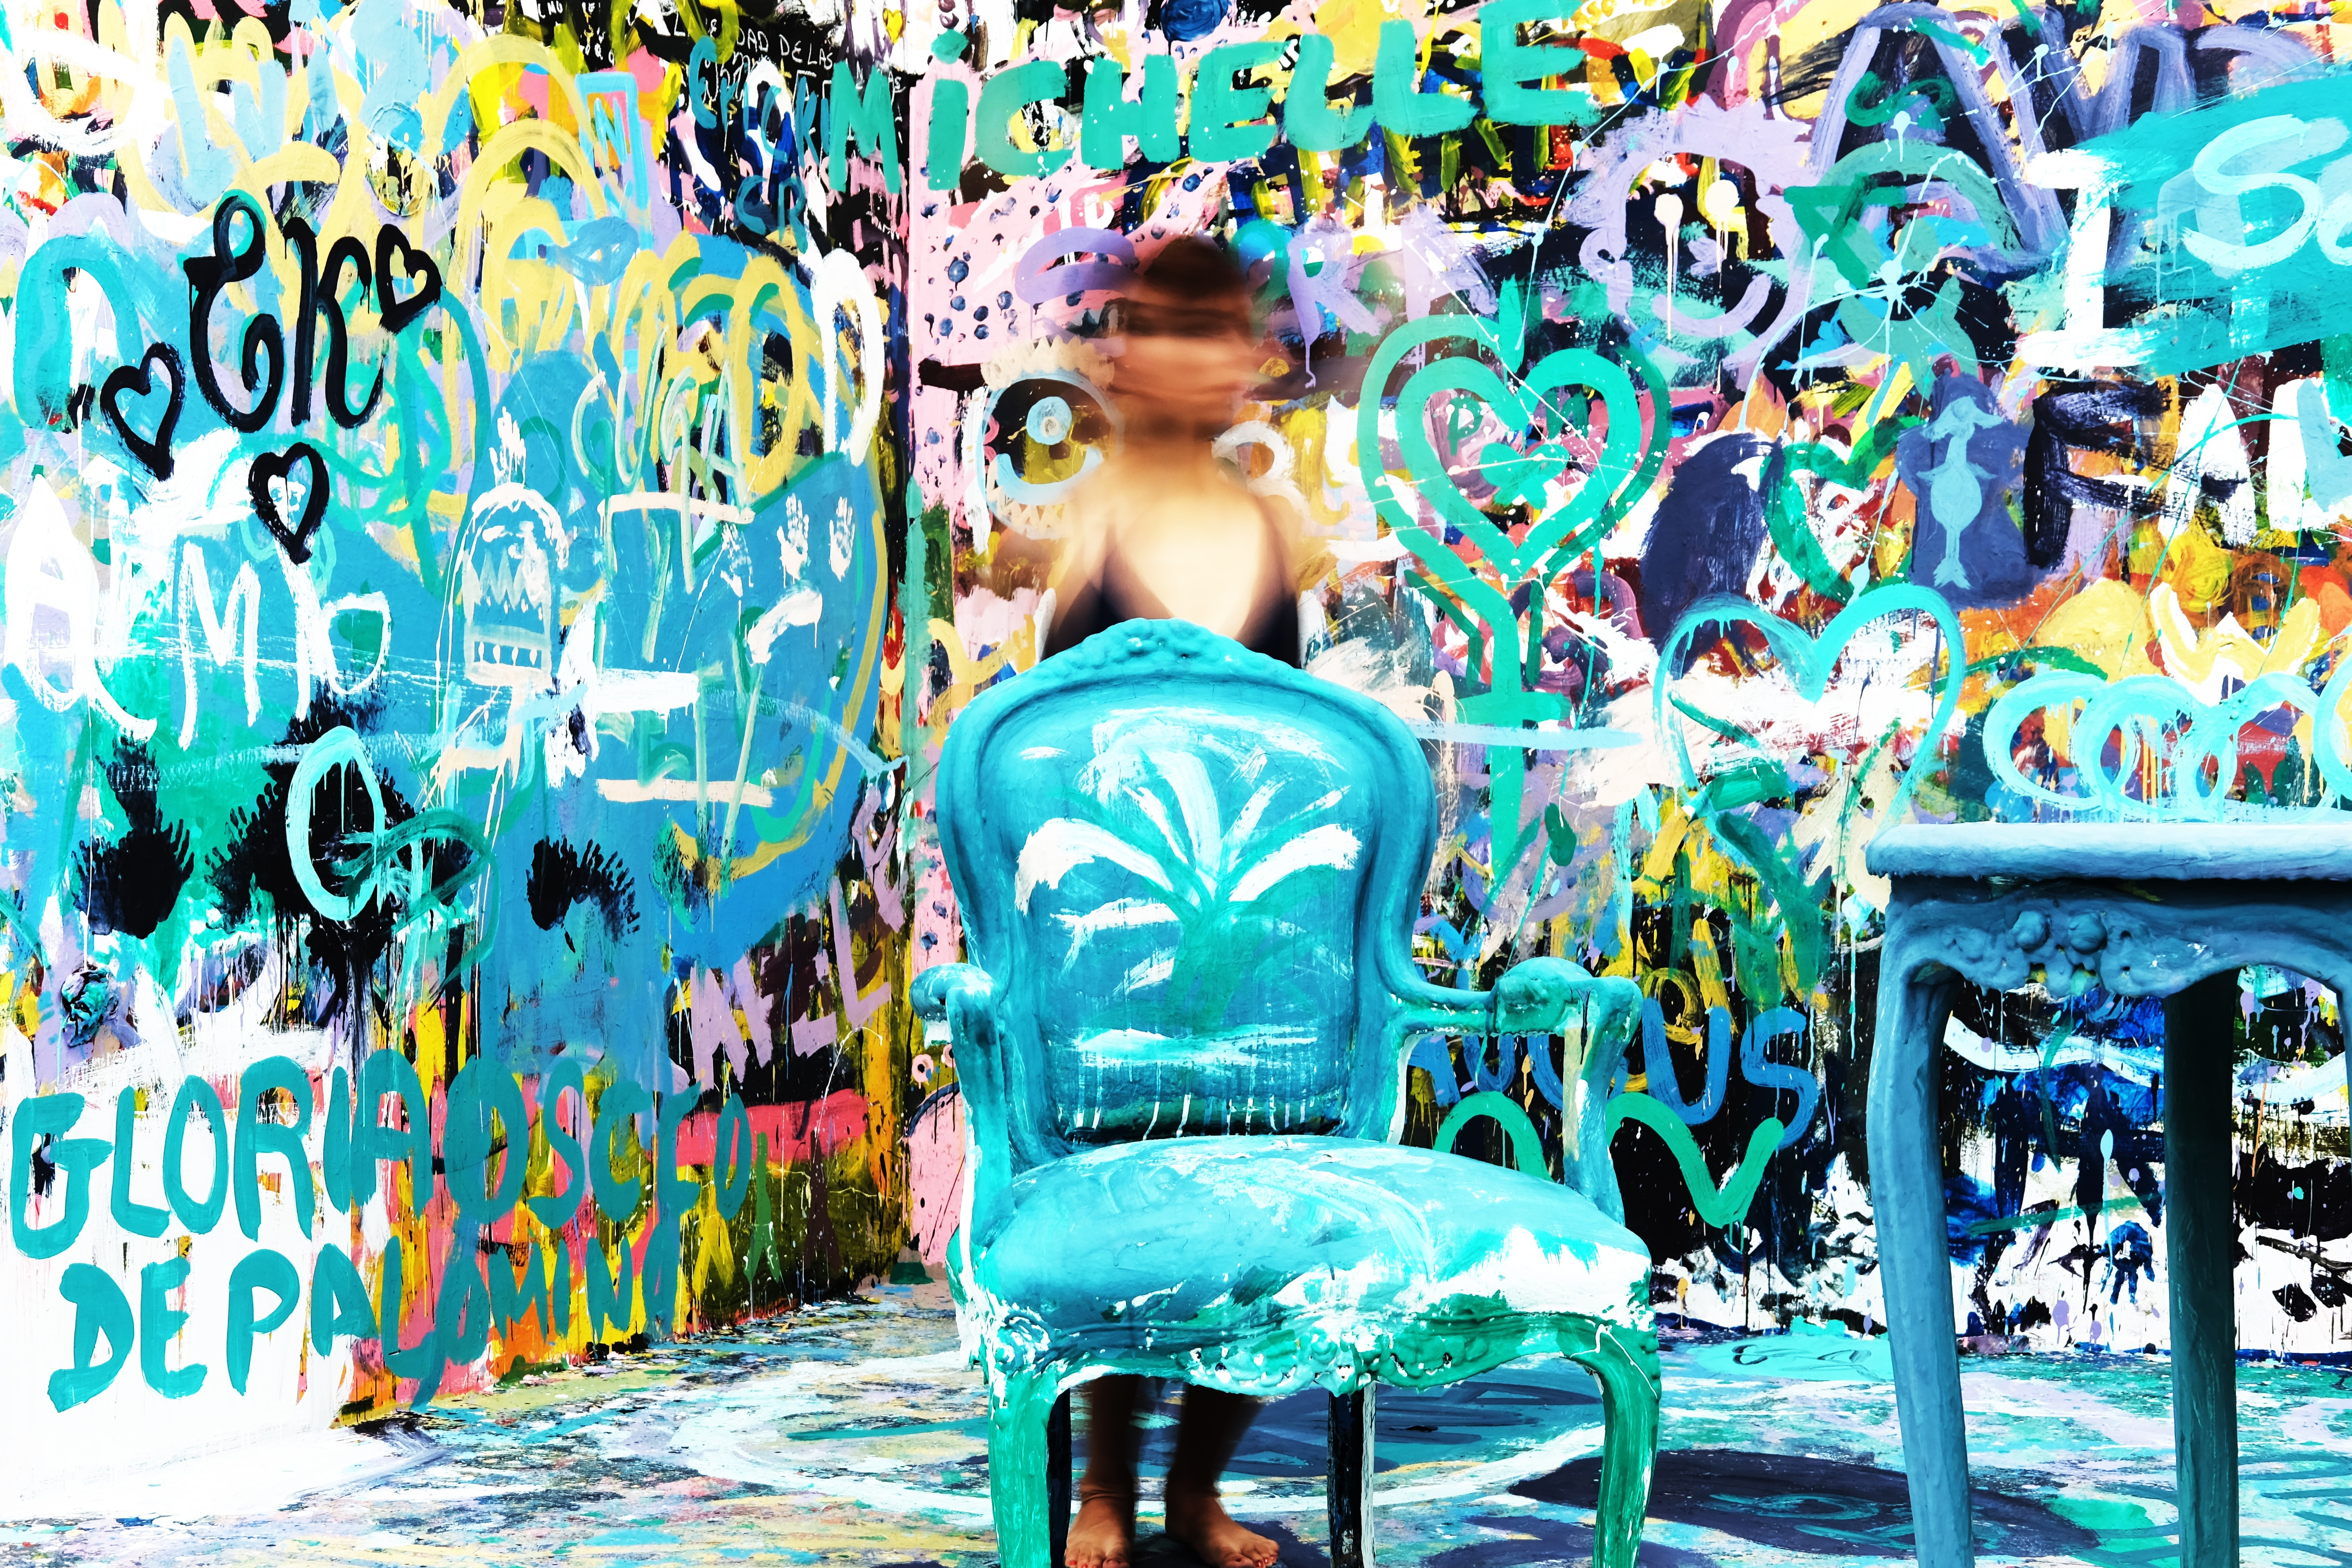 Aqua coloured chair and table in room with wall covered in graffiti, MATE Museo Mario Testino